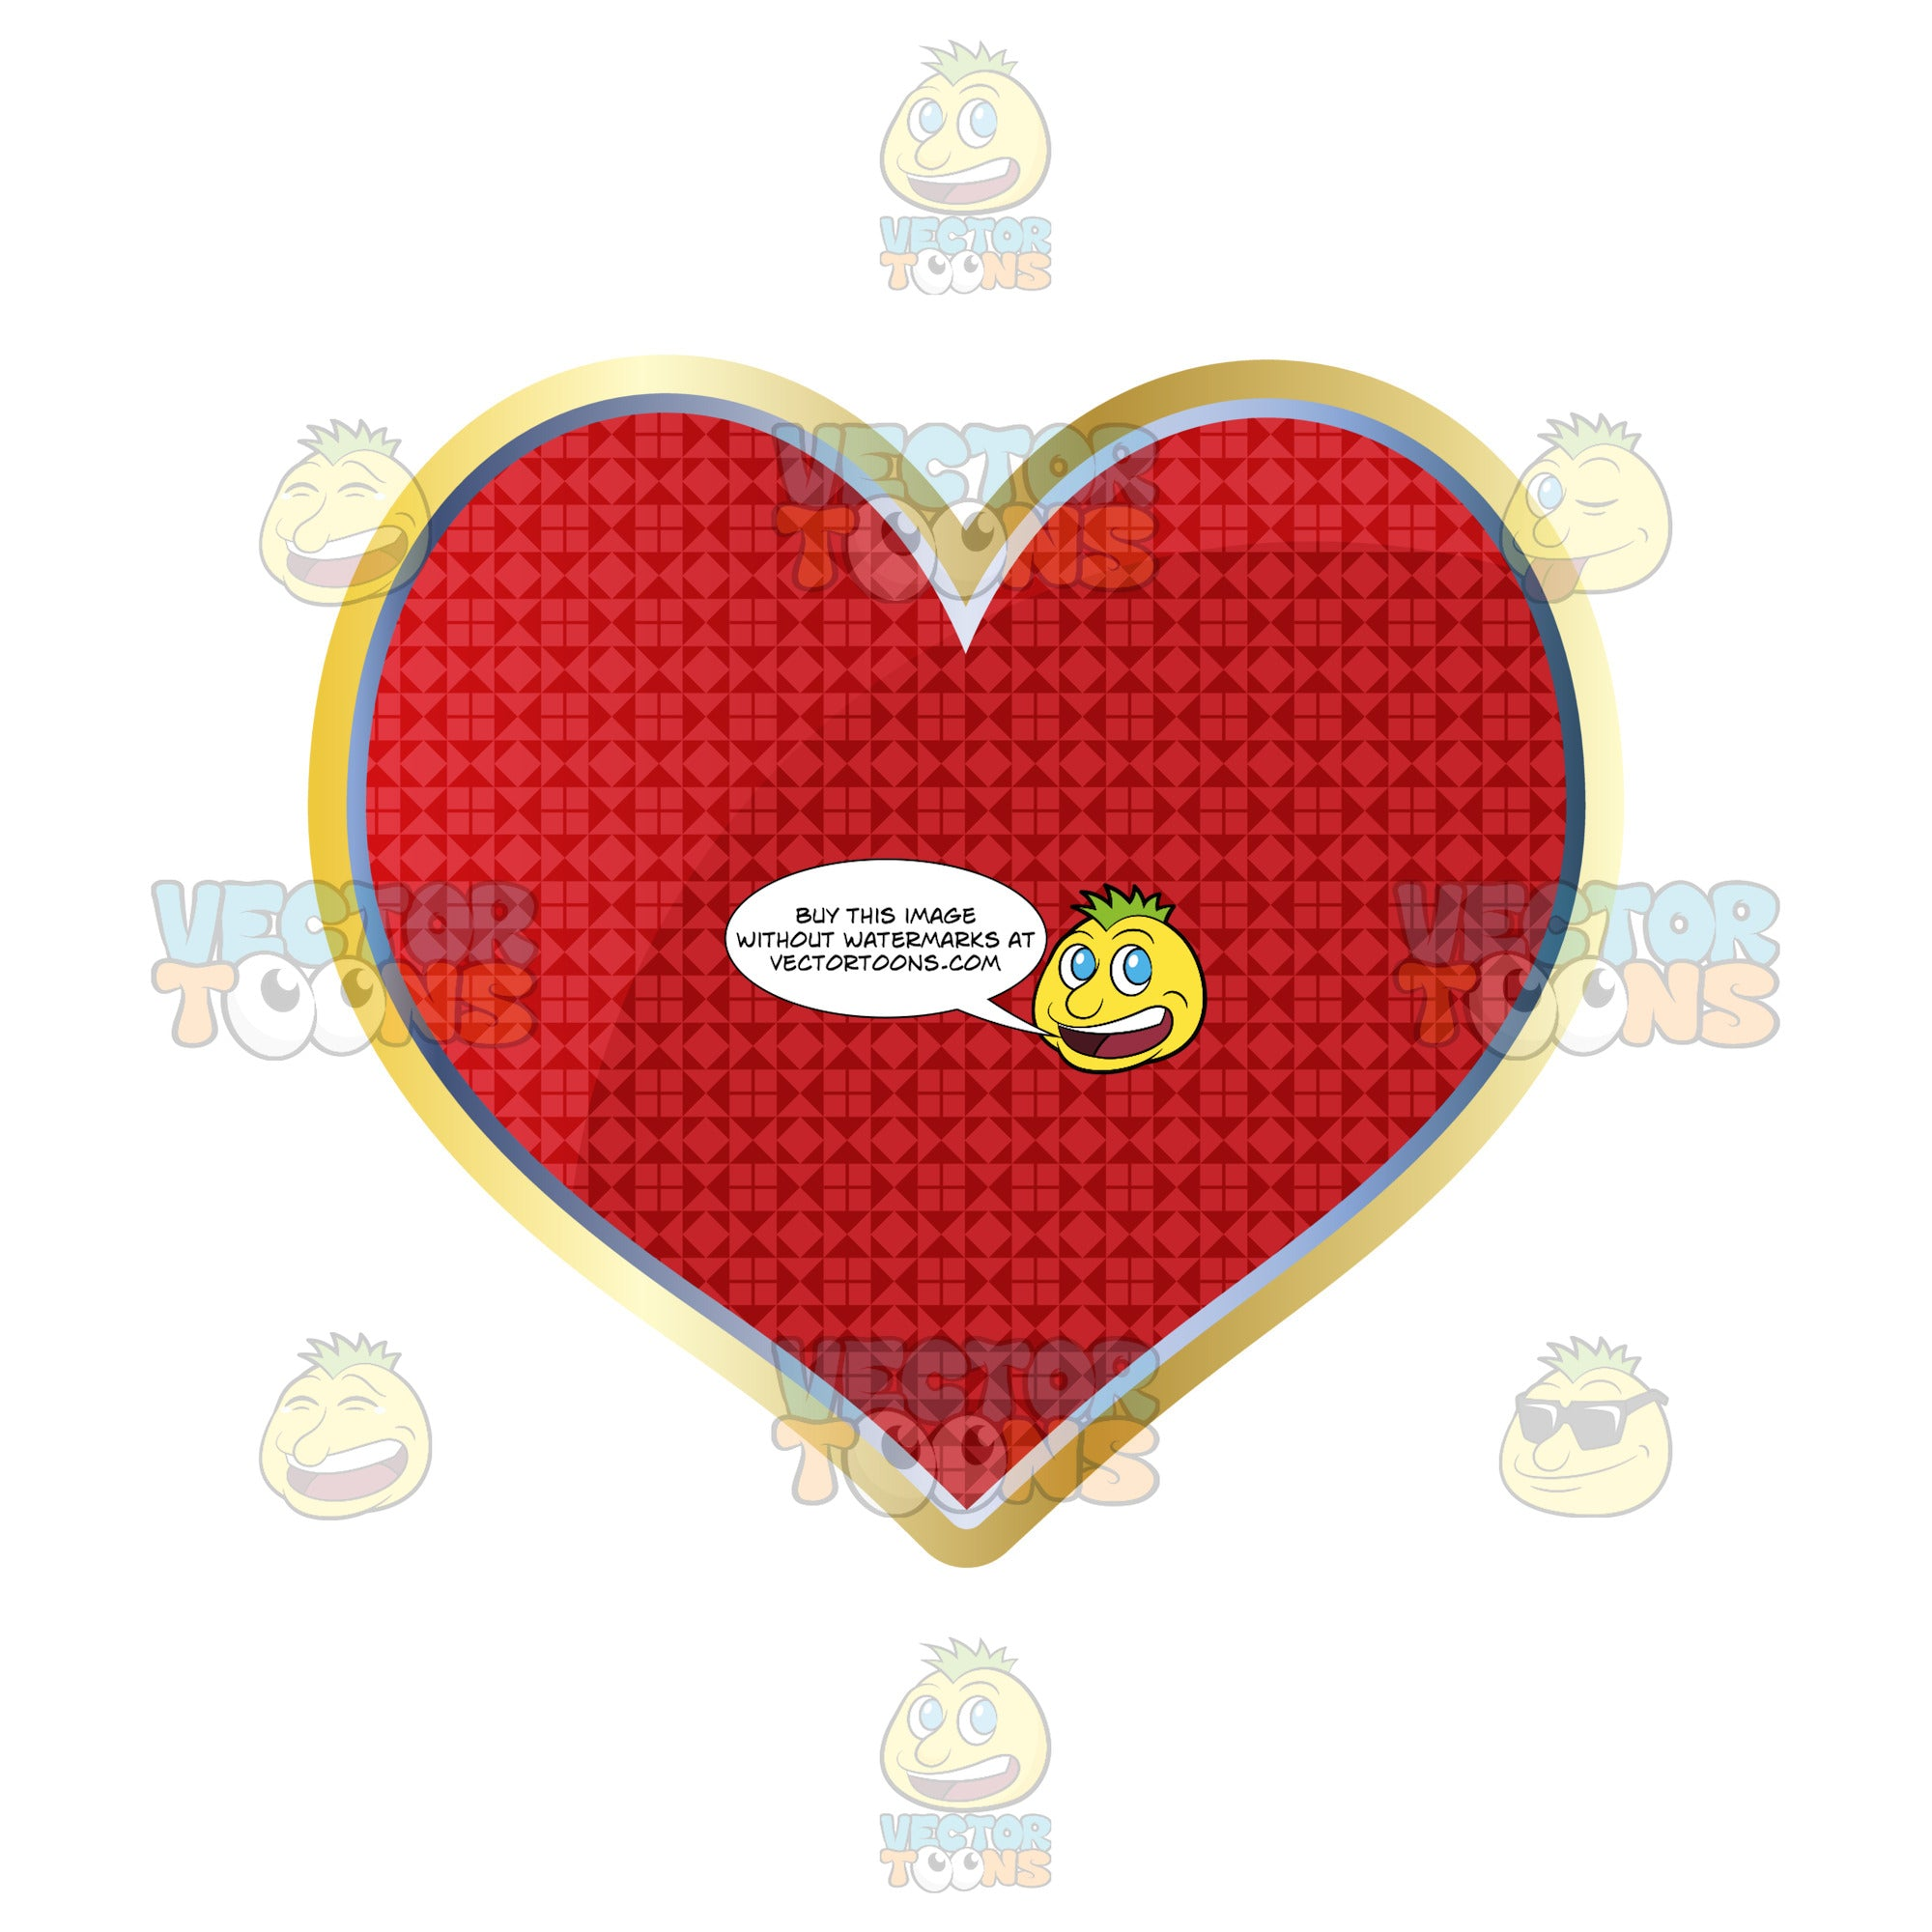 Red Heart Card Suite Symbol Outlined In Gold With Smaller Diamond Pattern Inside